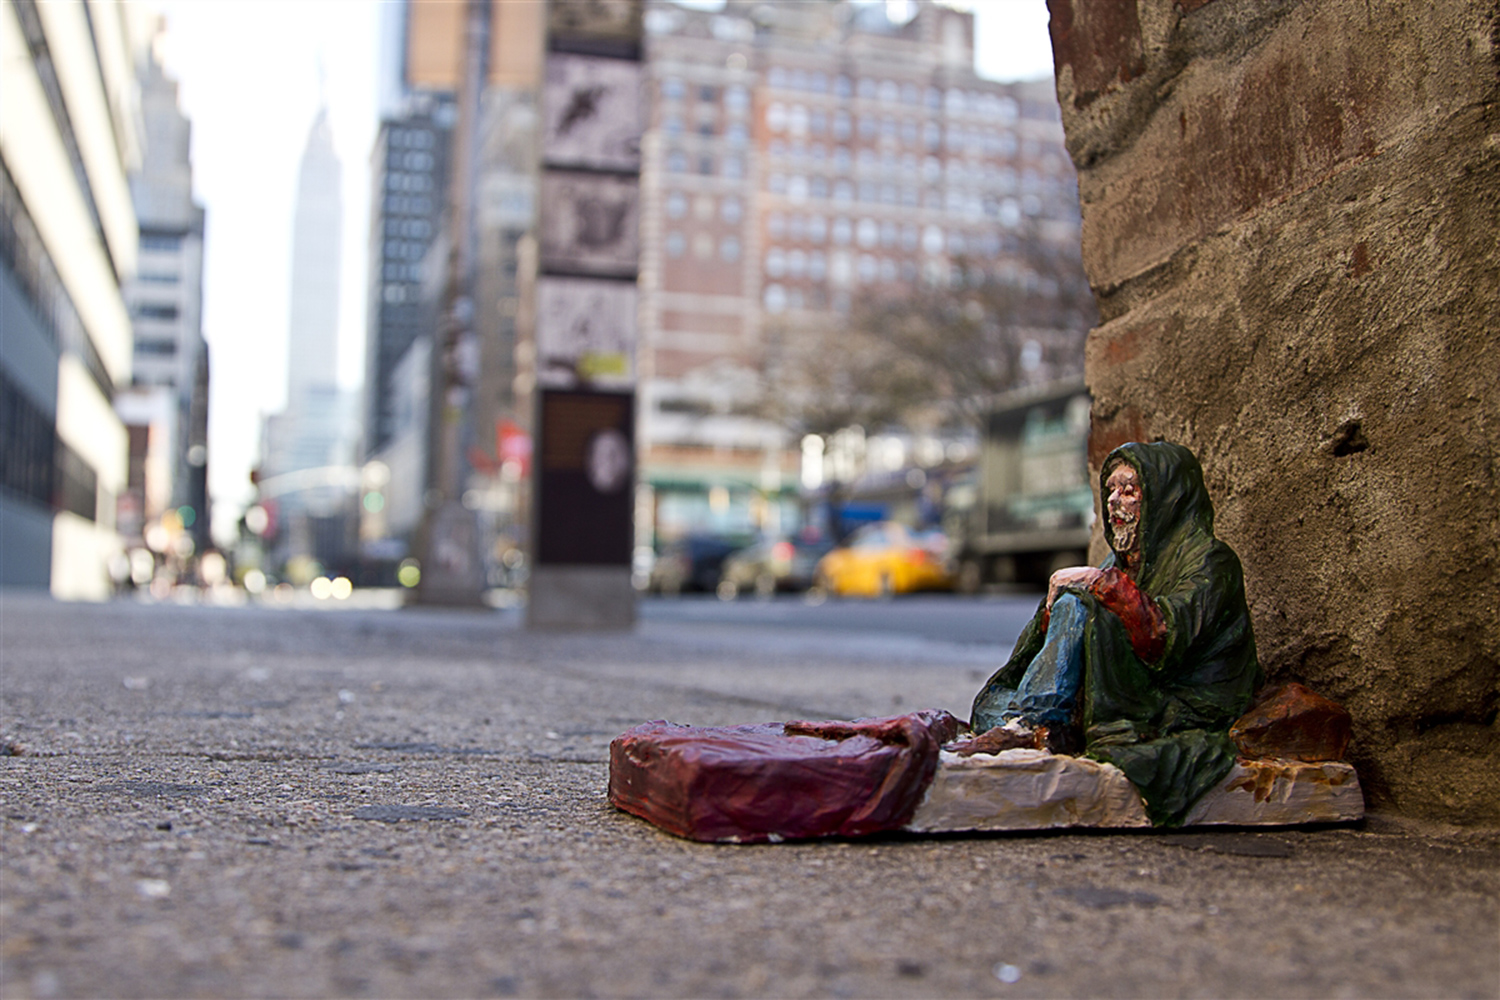 Isaac Cordal - Cement Eclipses, NYC - Homeless